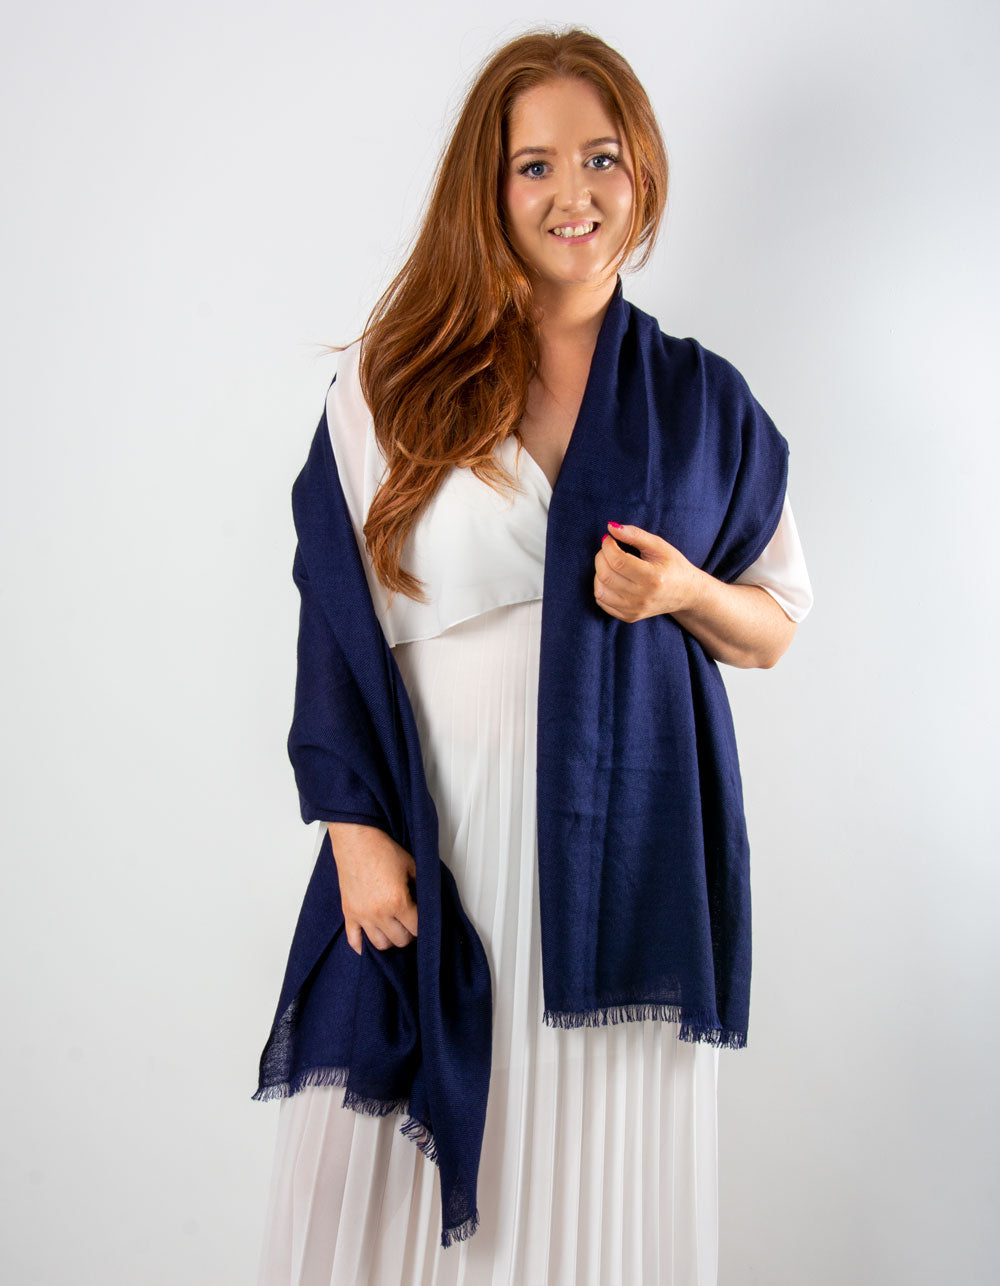 an image showing a cashmere wedding pashmina in navy